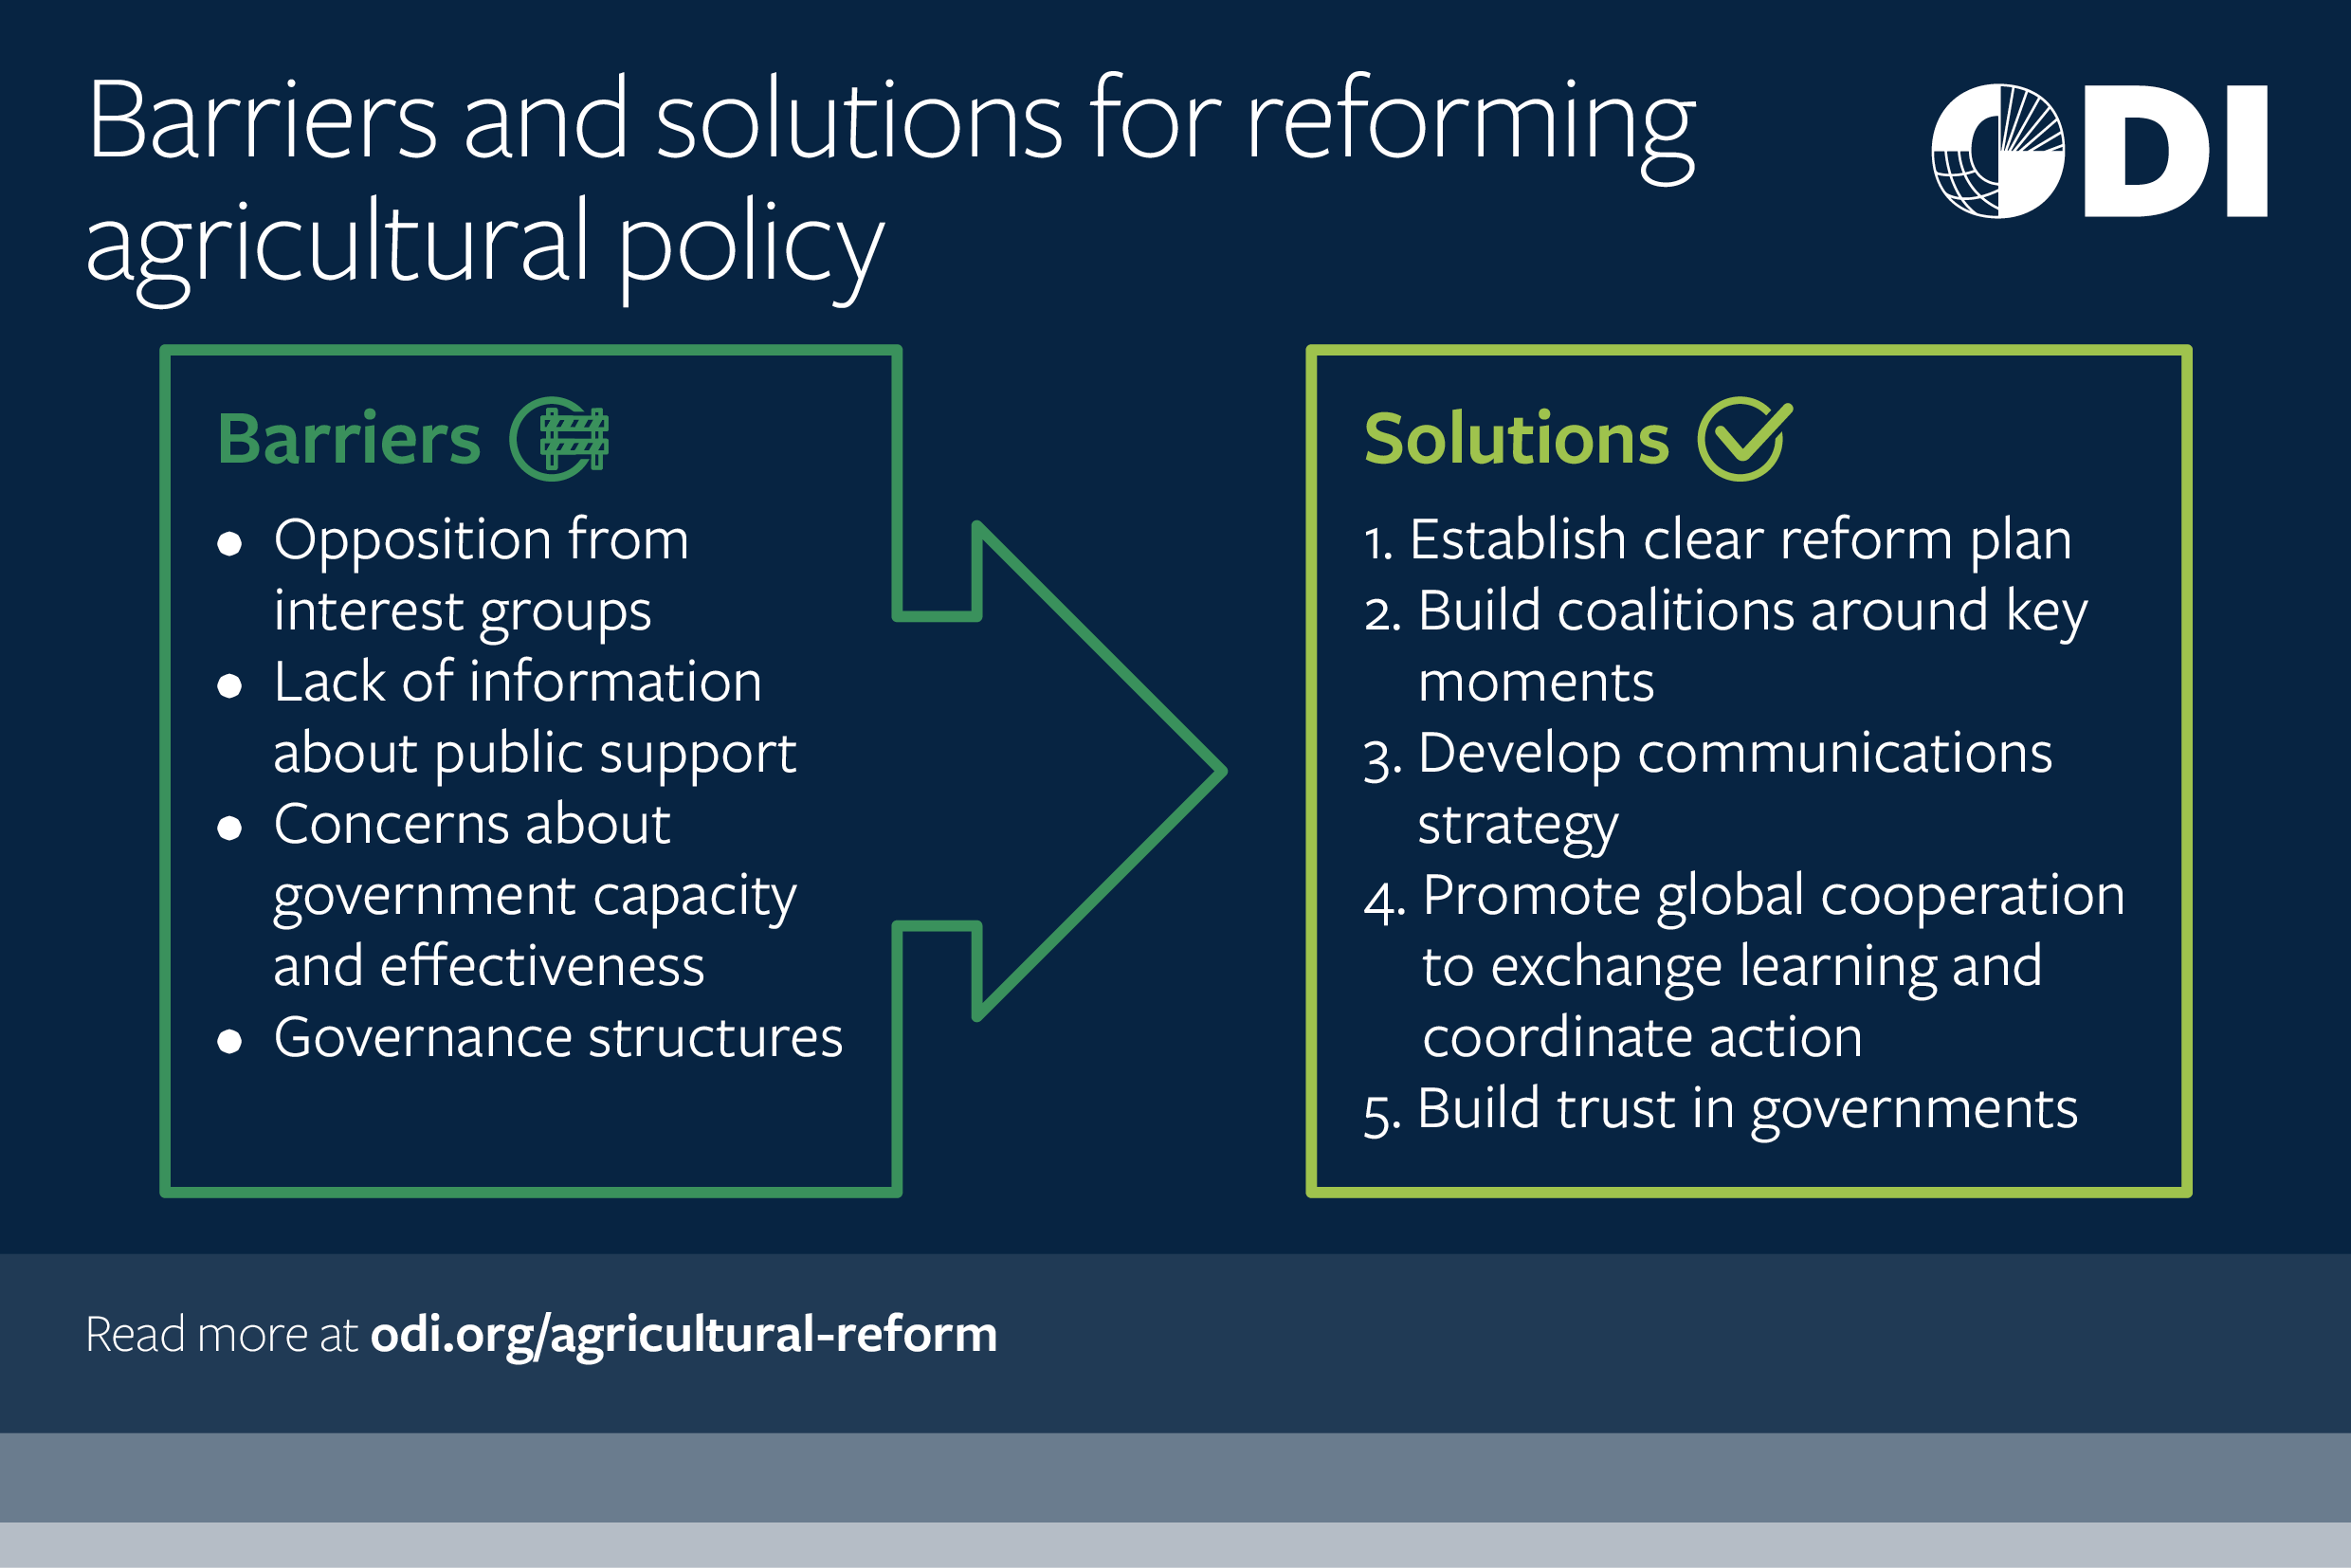 Barriers and solutions for reforming agricultural policy